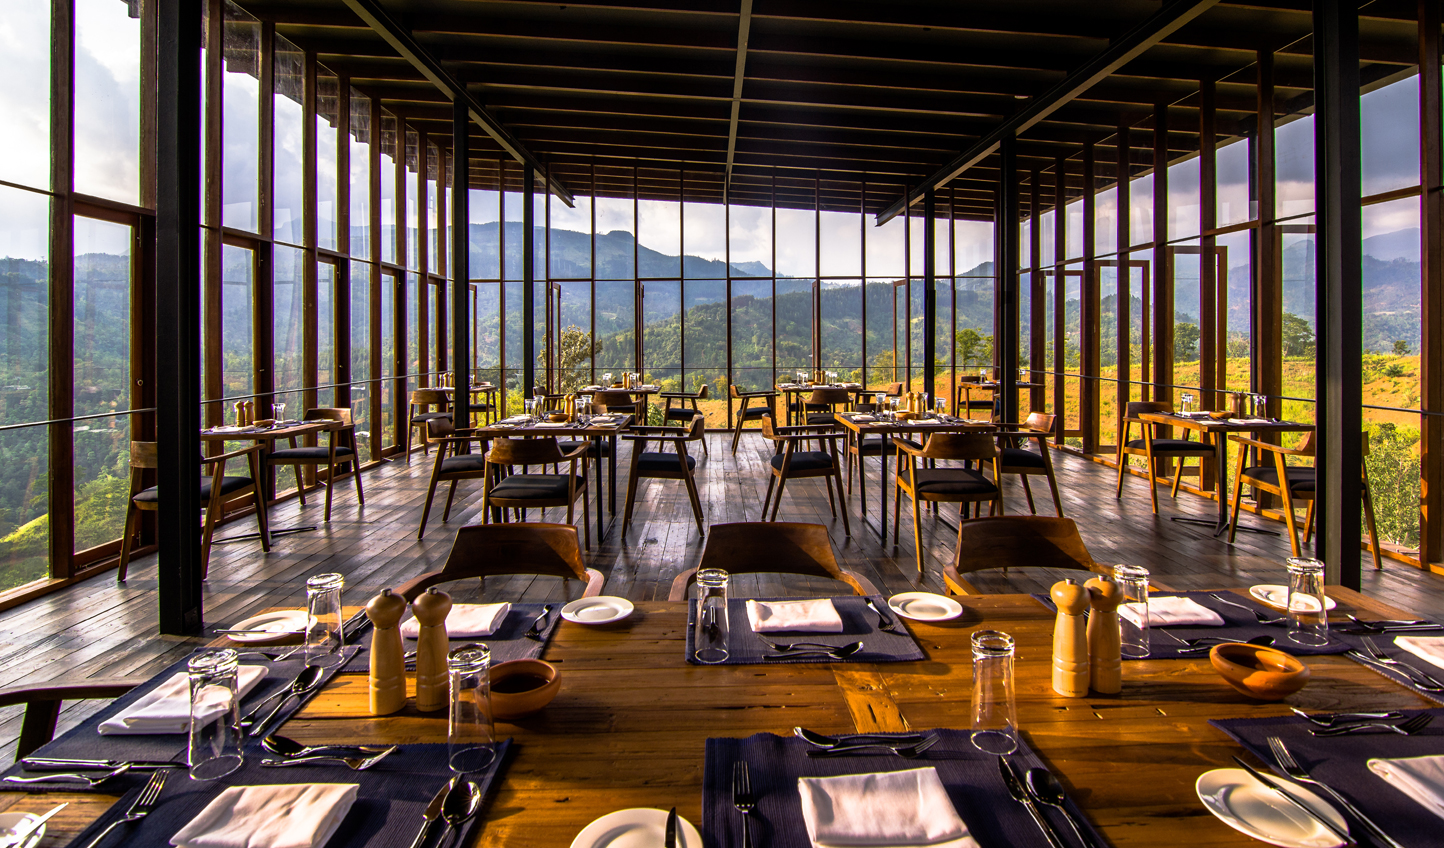 Float on air in the stunning glassbox restaurant